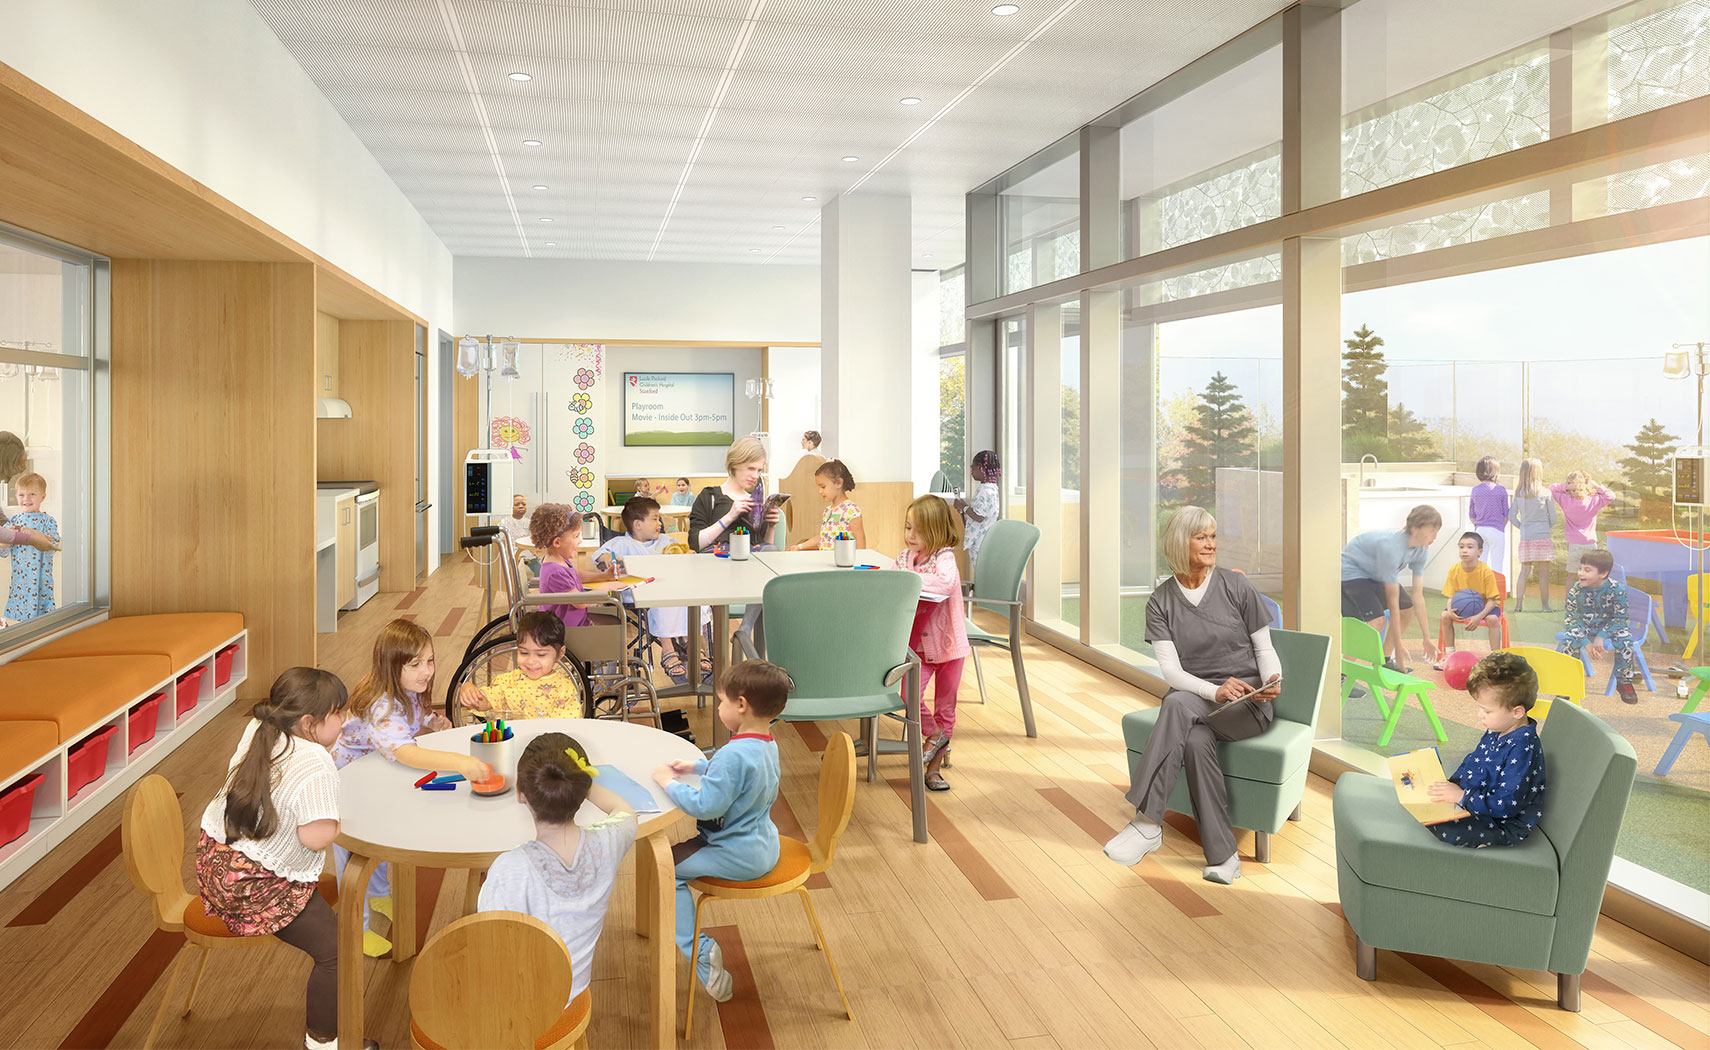 The New Lucile Packard Childrenu0027s Hospital Stanford, Palo Alto, Calif., Is  On Track To Open In December When The Facility Plans To Transform The  Patient ...